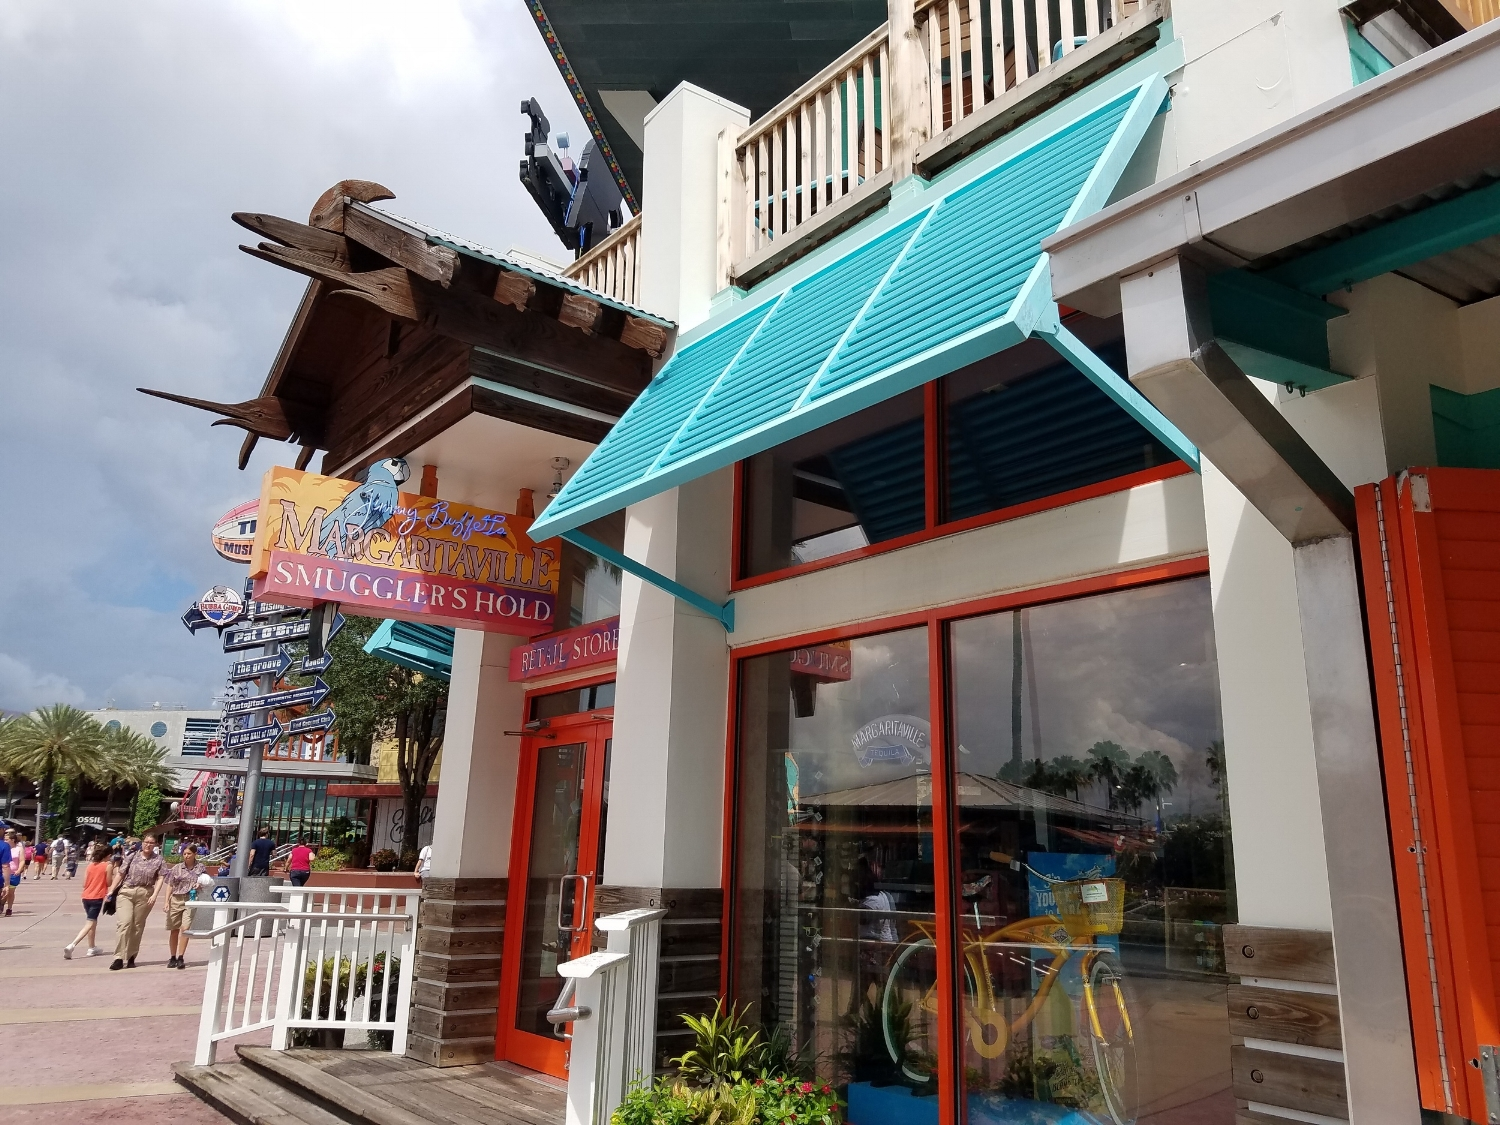 Retail Shop Entrance at Jimmy Buffet Margaritaville